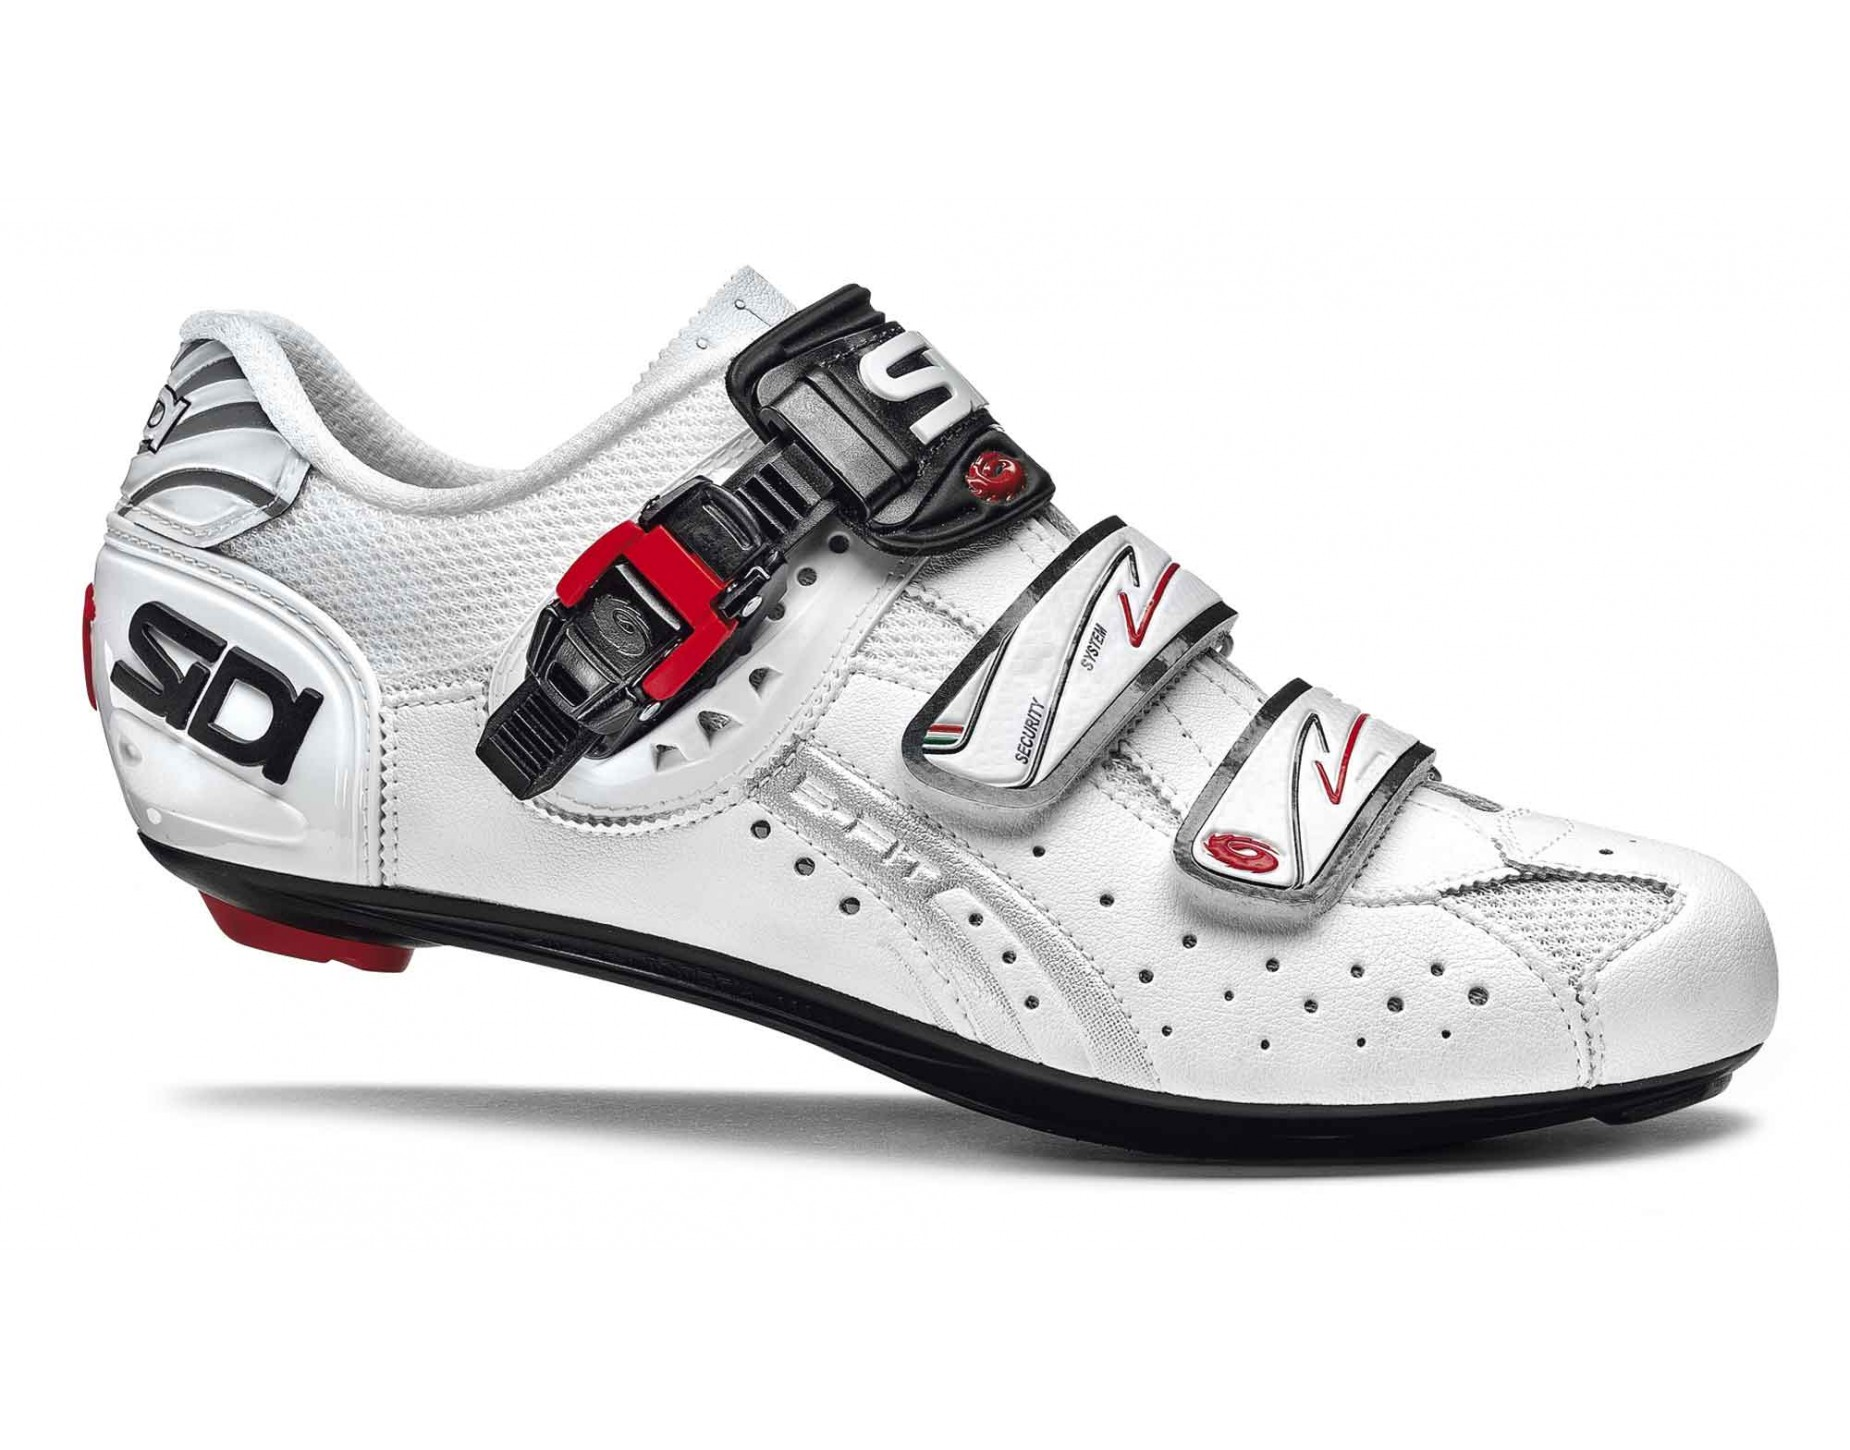 Getest: Sidi Genius 5 Fit Carbon Review